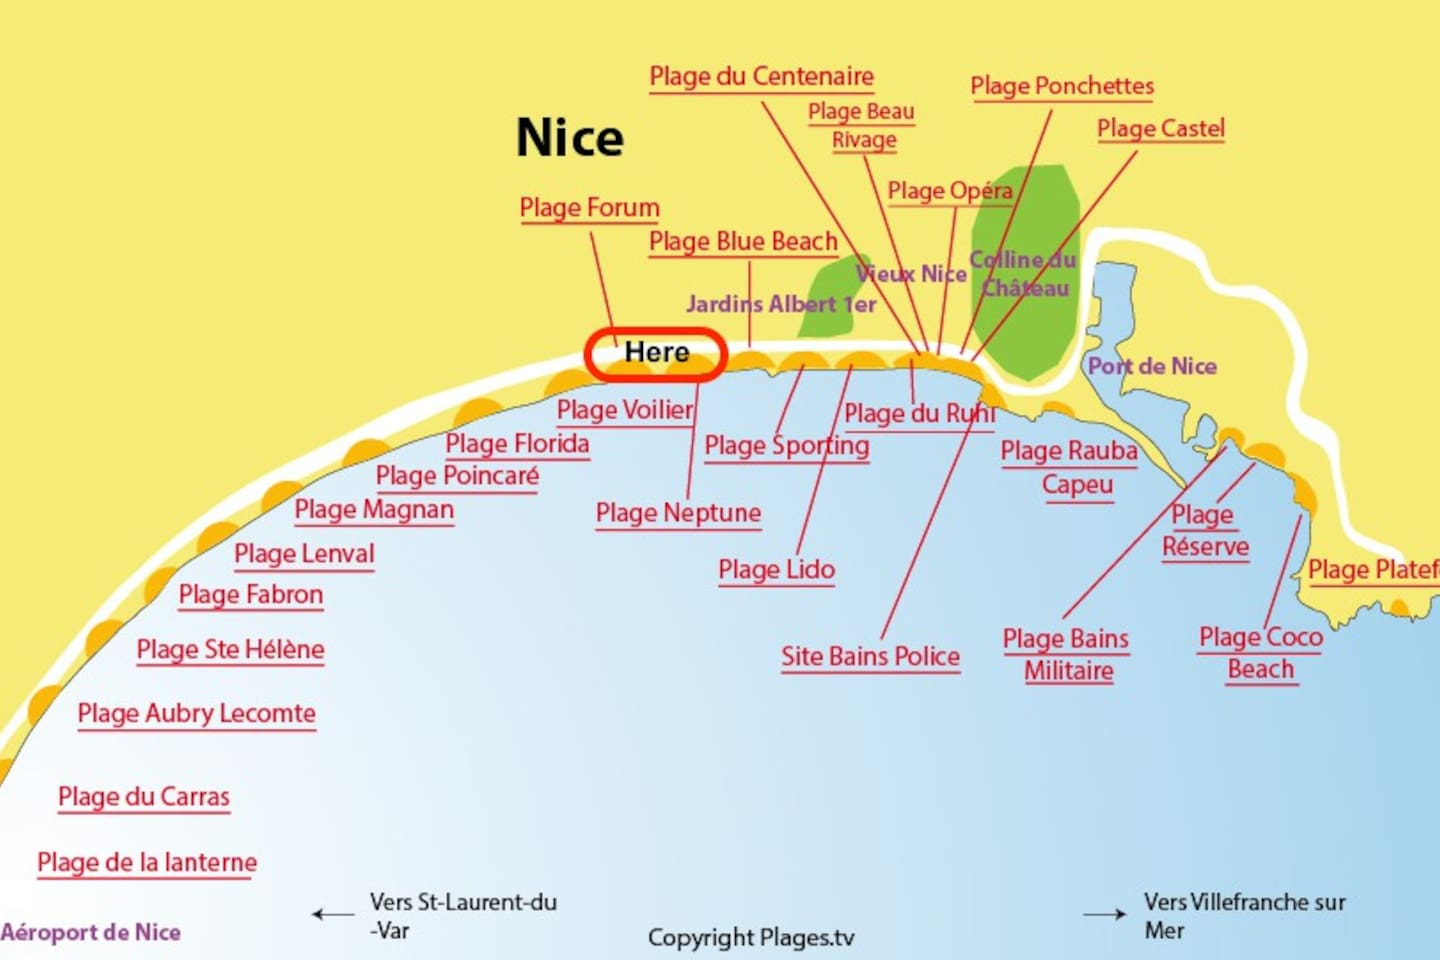 nice beach promenade des anglais apartments for rent in nice